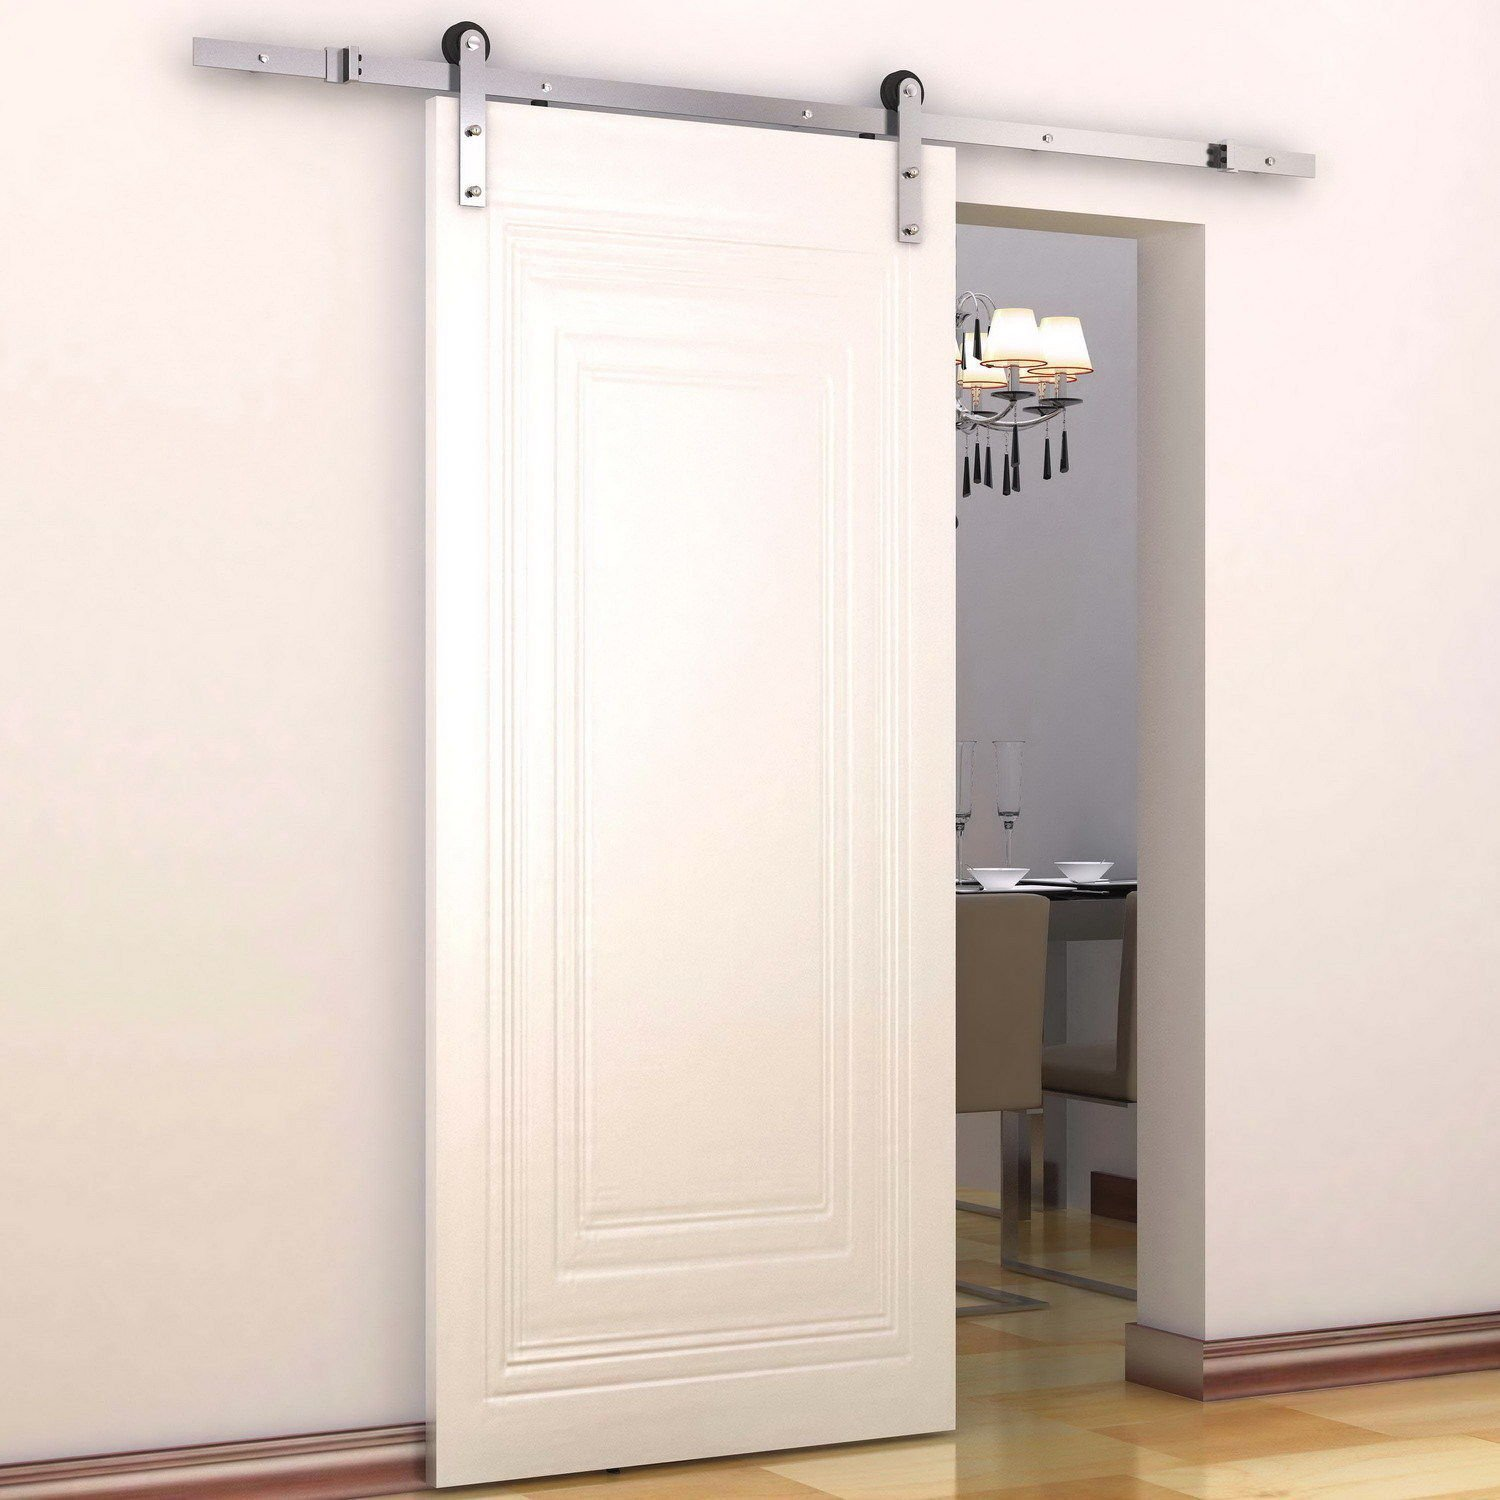 Barn Door Double Track System | Bypass Barn Doors | Interior Sliding Barn Door Kit